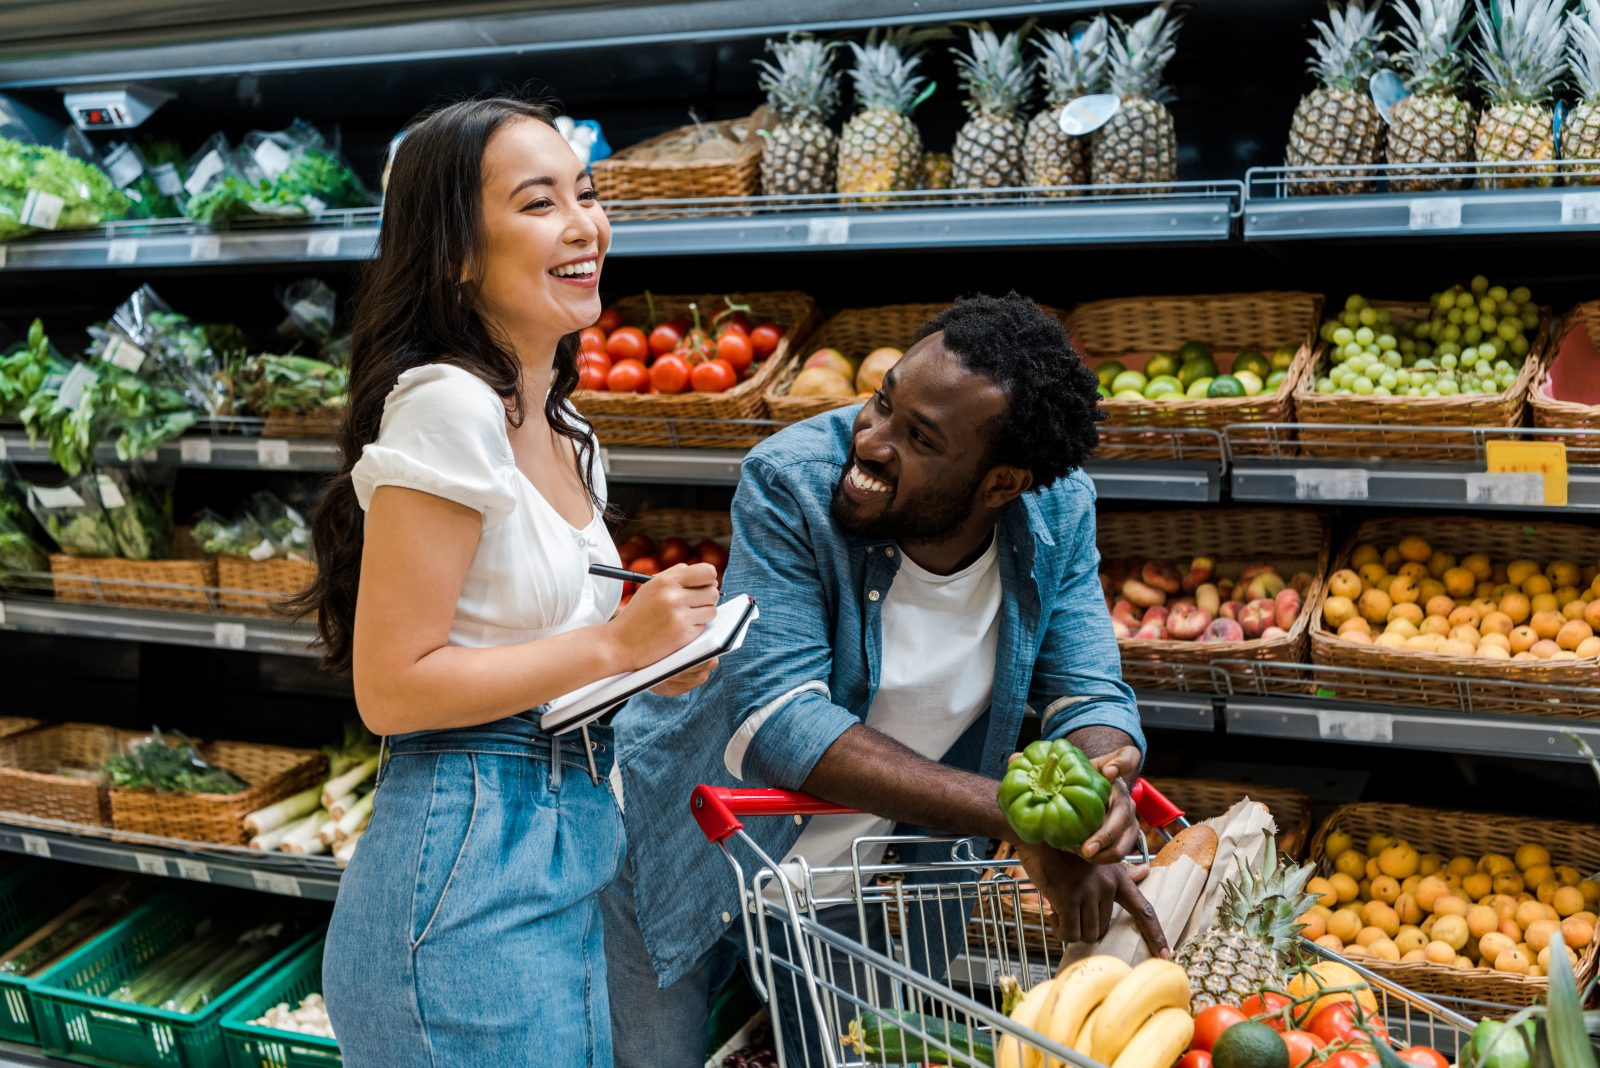 Man and woman in the produce section of the grocery store / Photo: LightField Studios/shutterstock.com